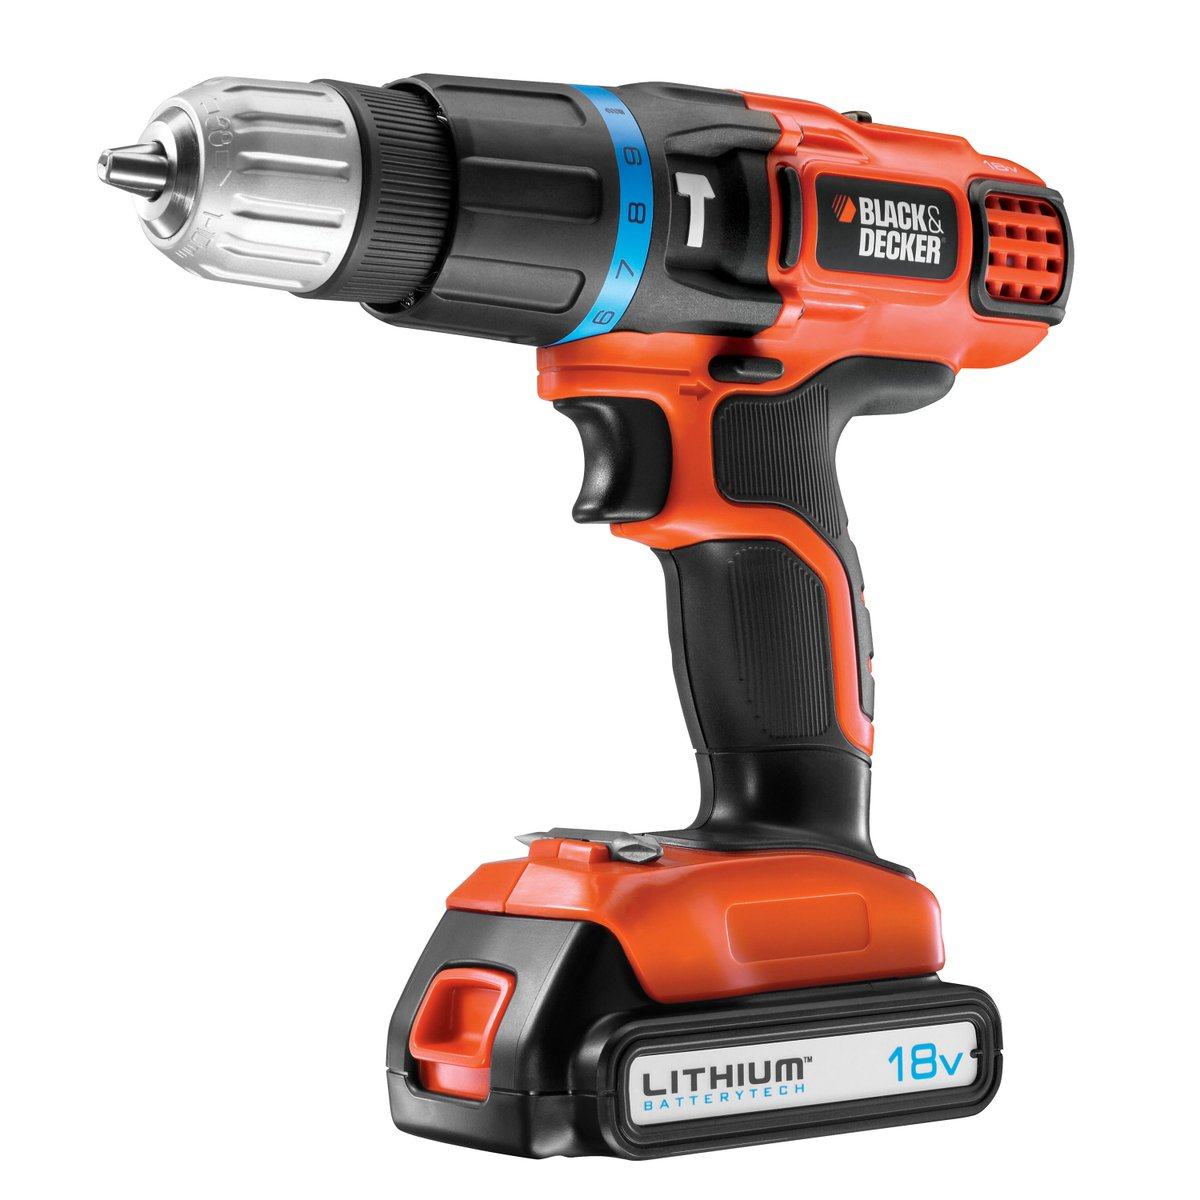 Giveaway time! RT for the chance to win this Black and Decker drill. T&Cs: https://t.co/I53LMi8799 https://t.co/giaz1dXOv2